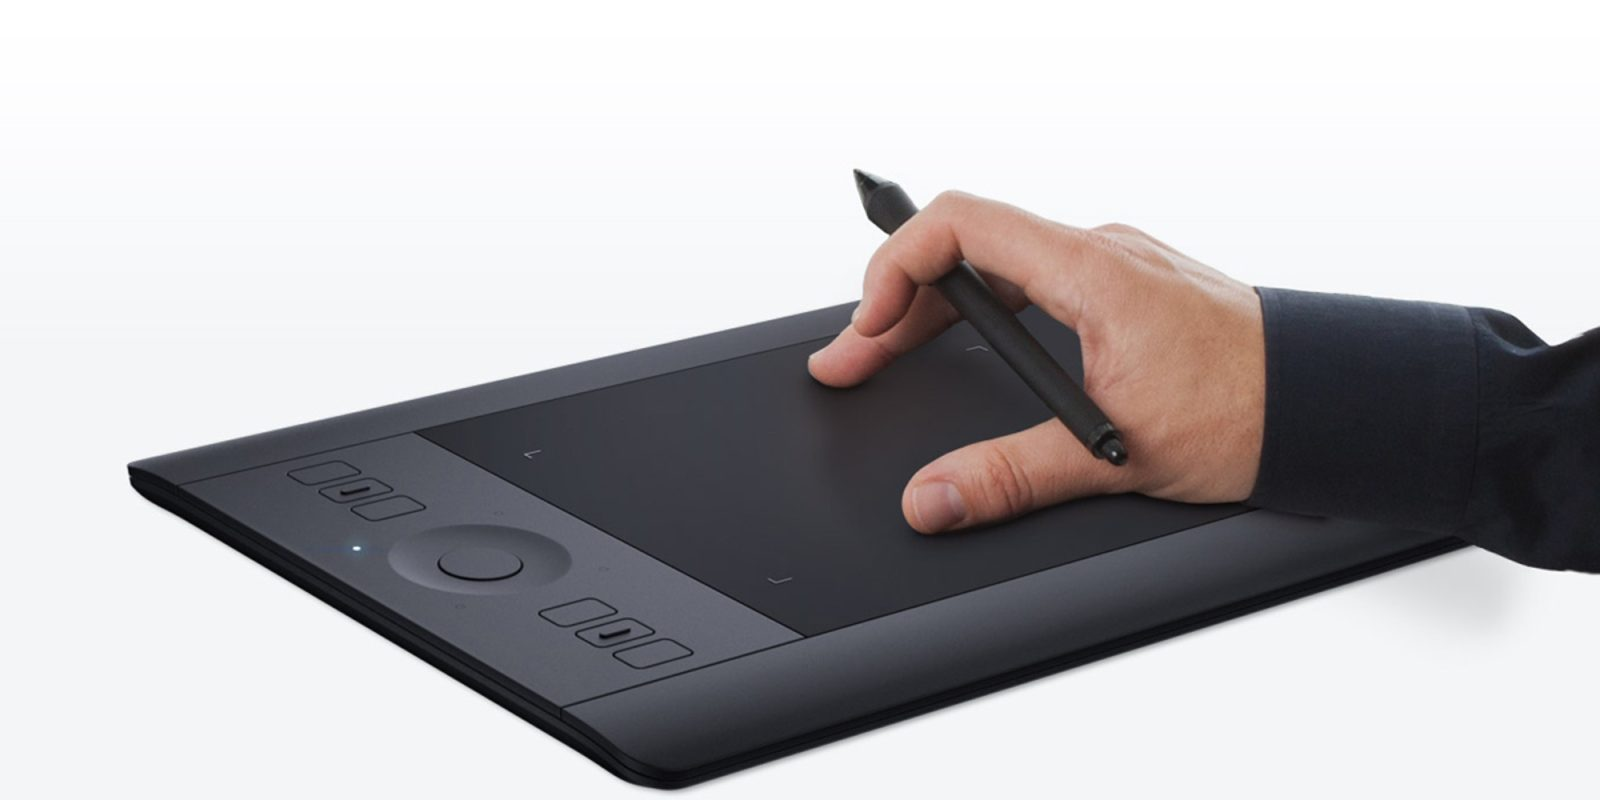 Wacom Intuos Pro Touch Tablet & Pen falls to lowest price in